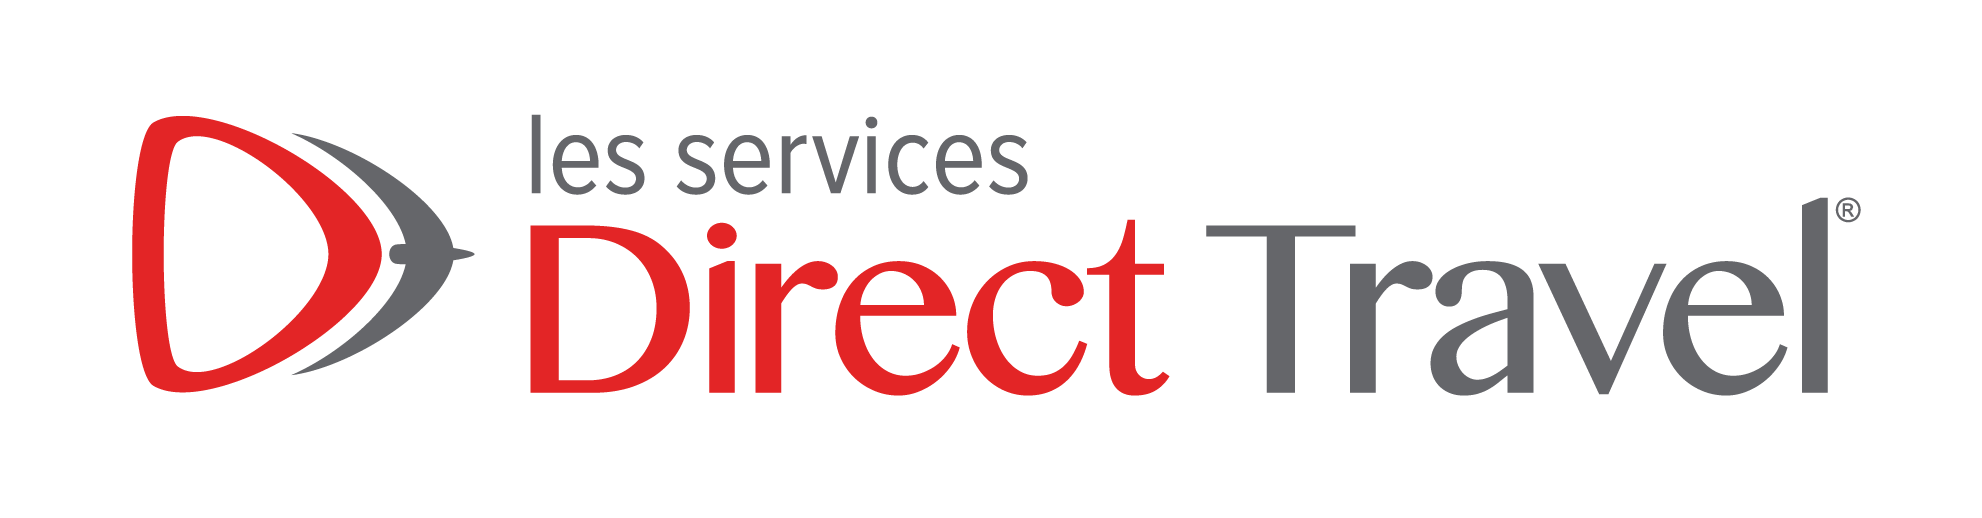 Les services Direct Travel